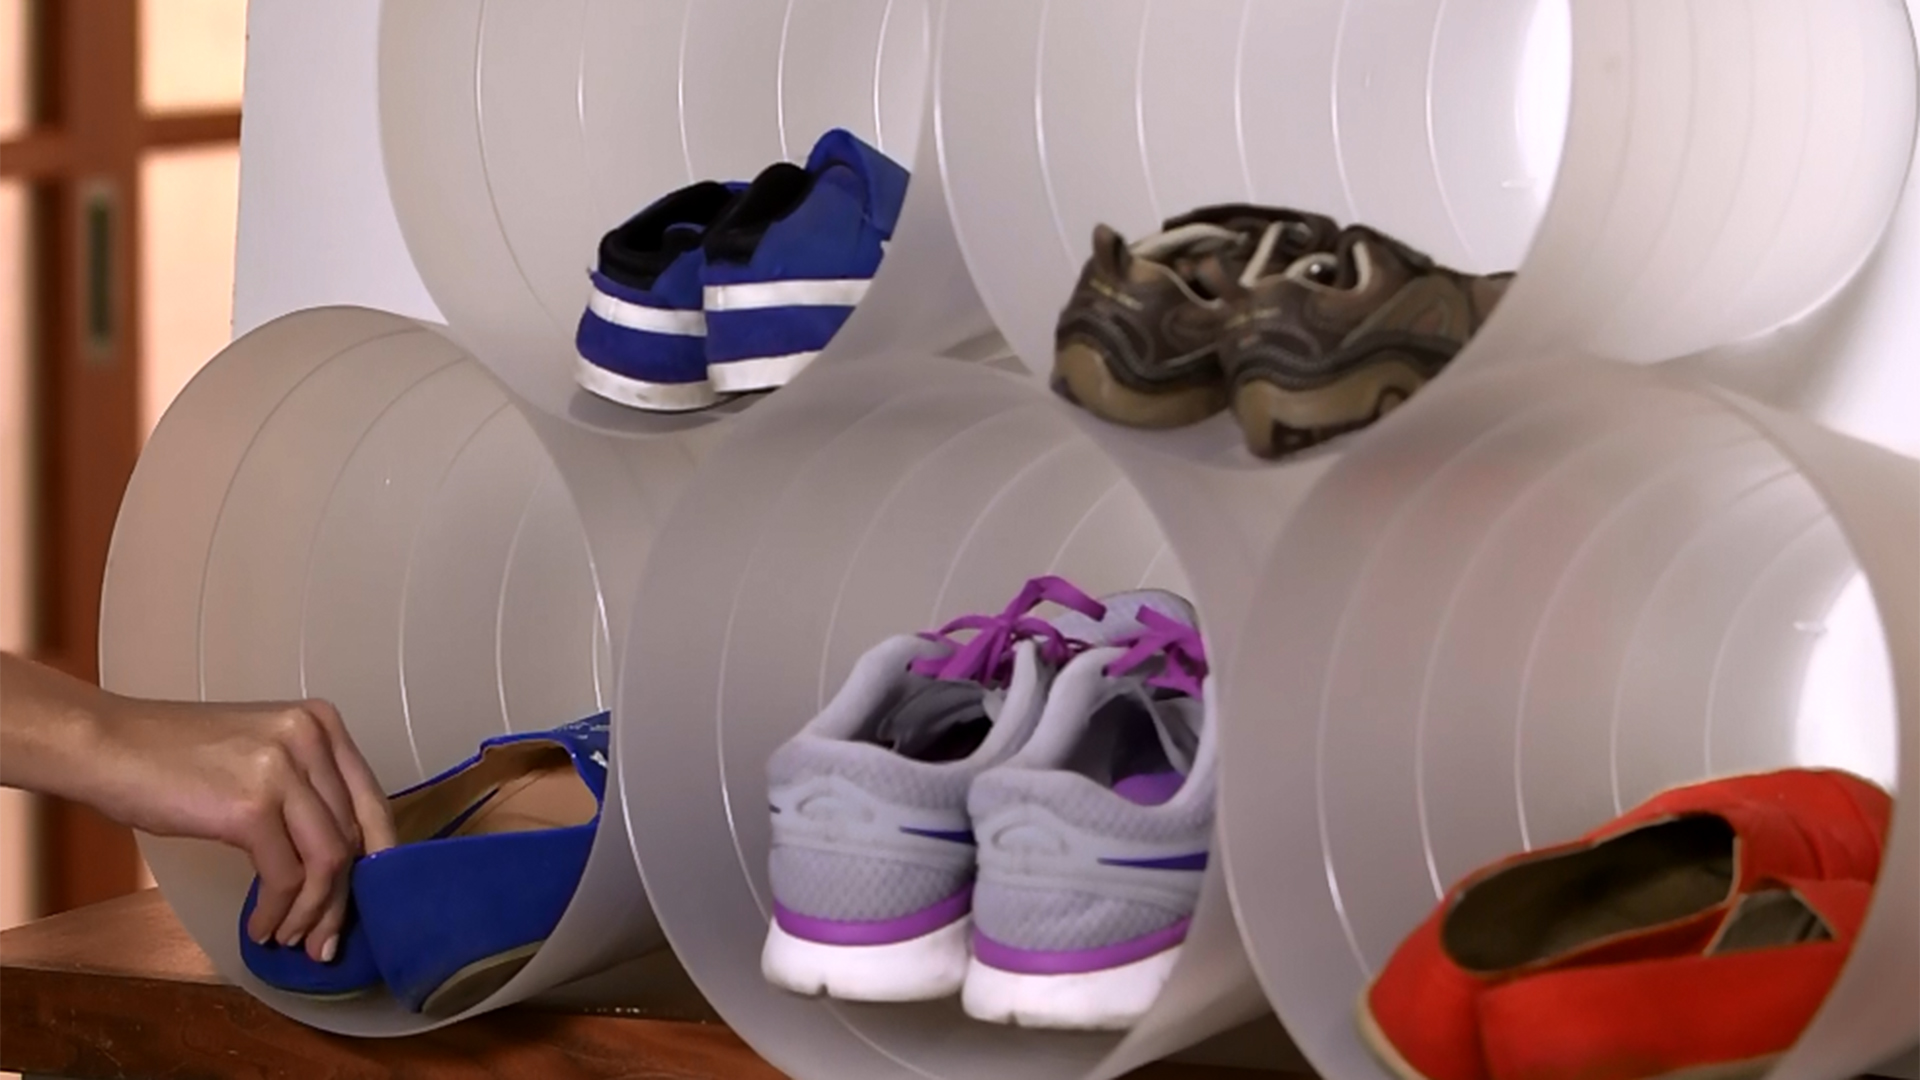 DIY shoe racks to keep entryway organized